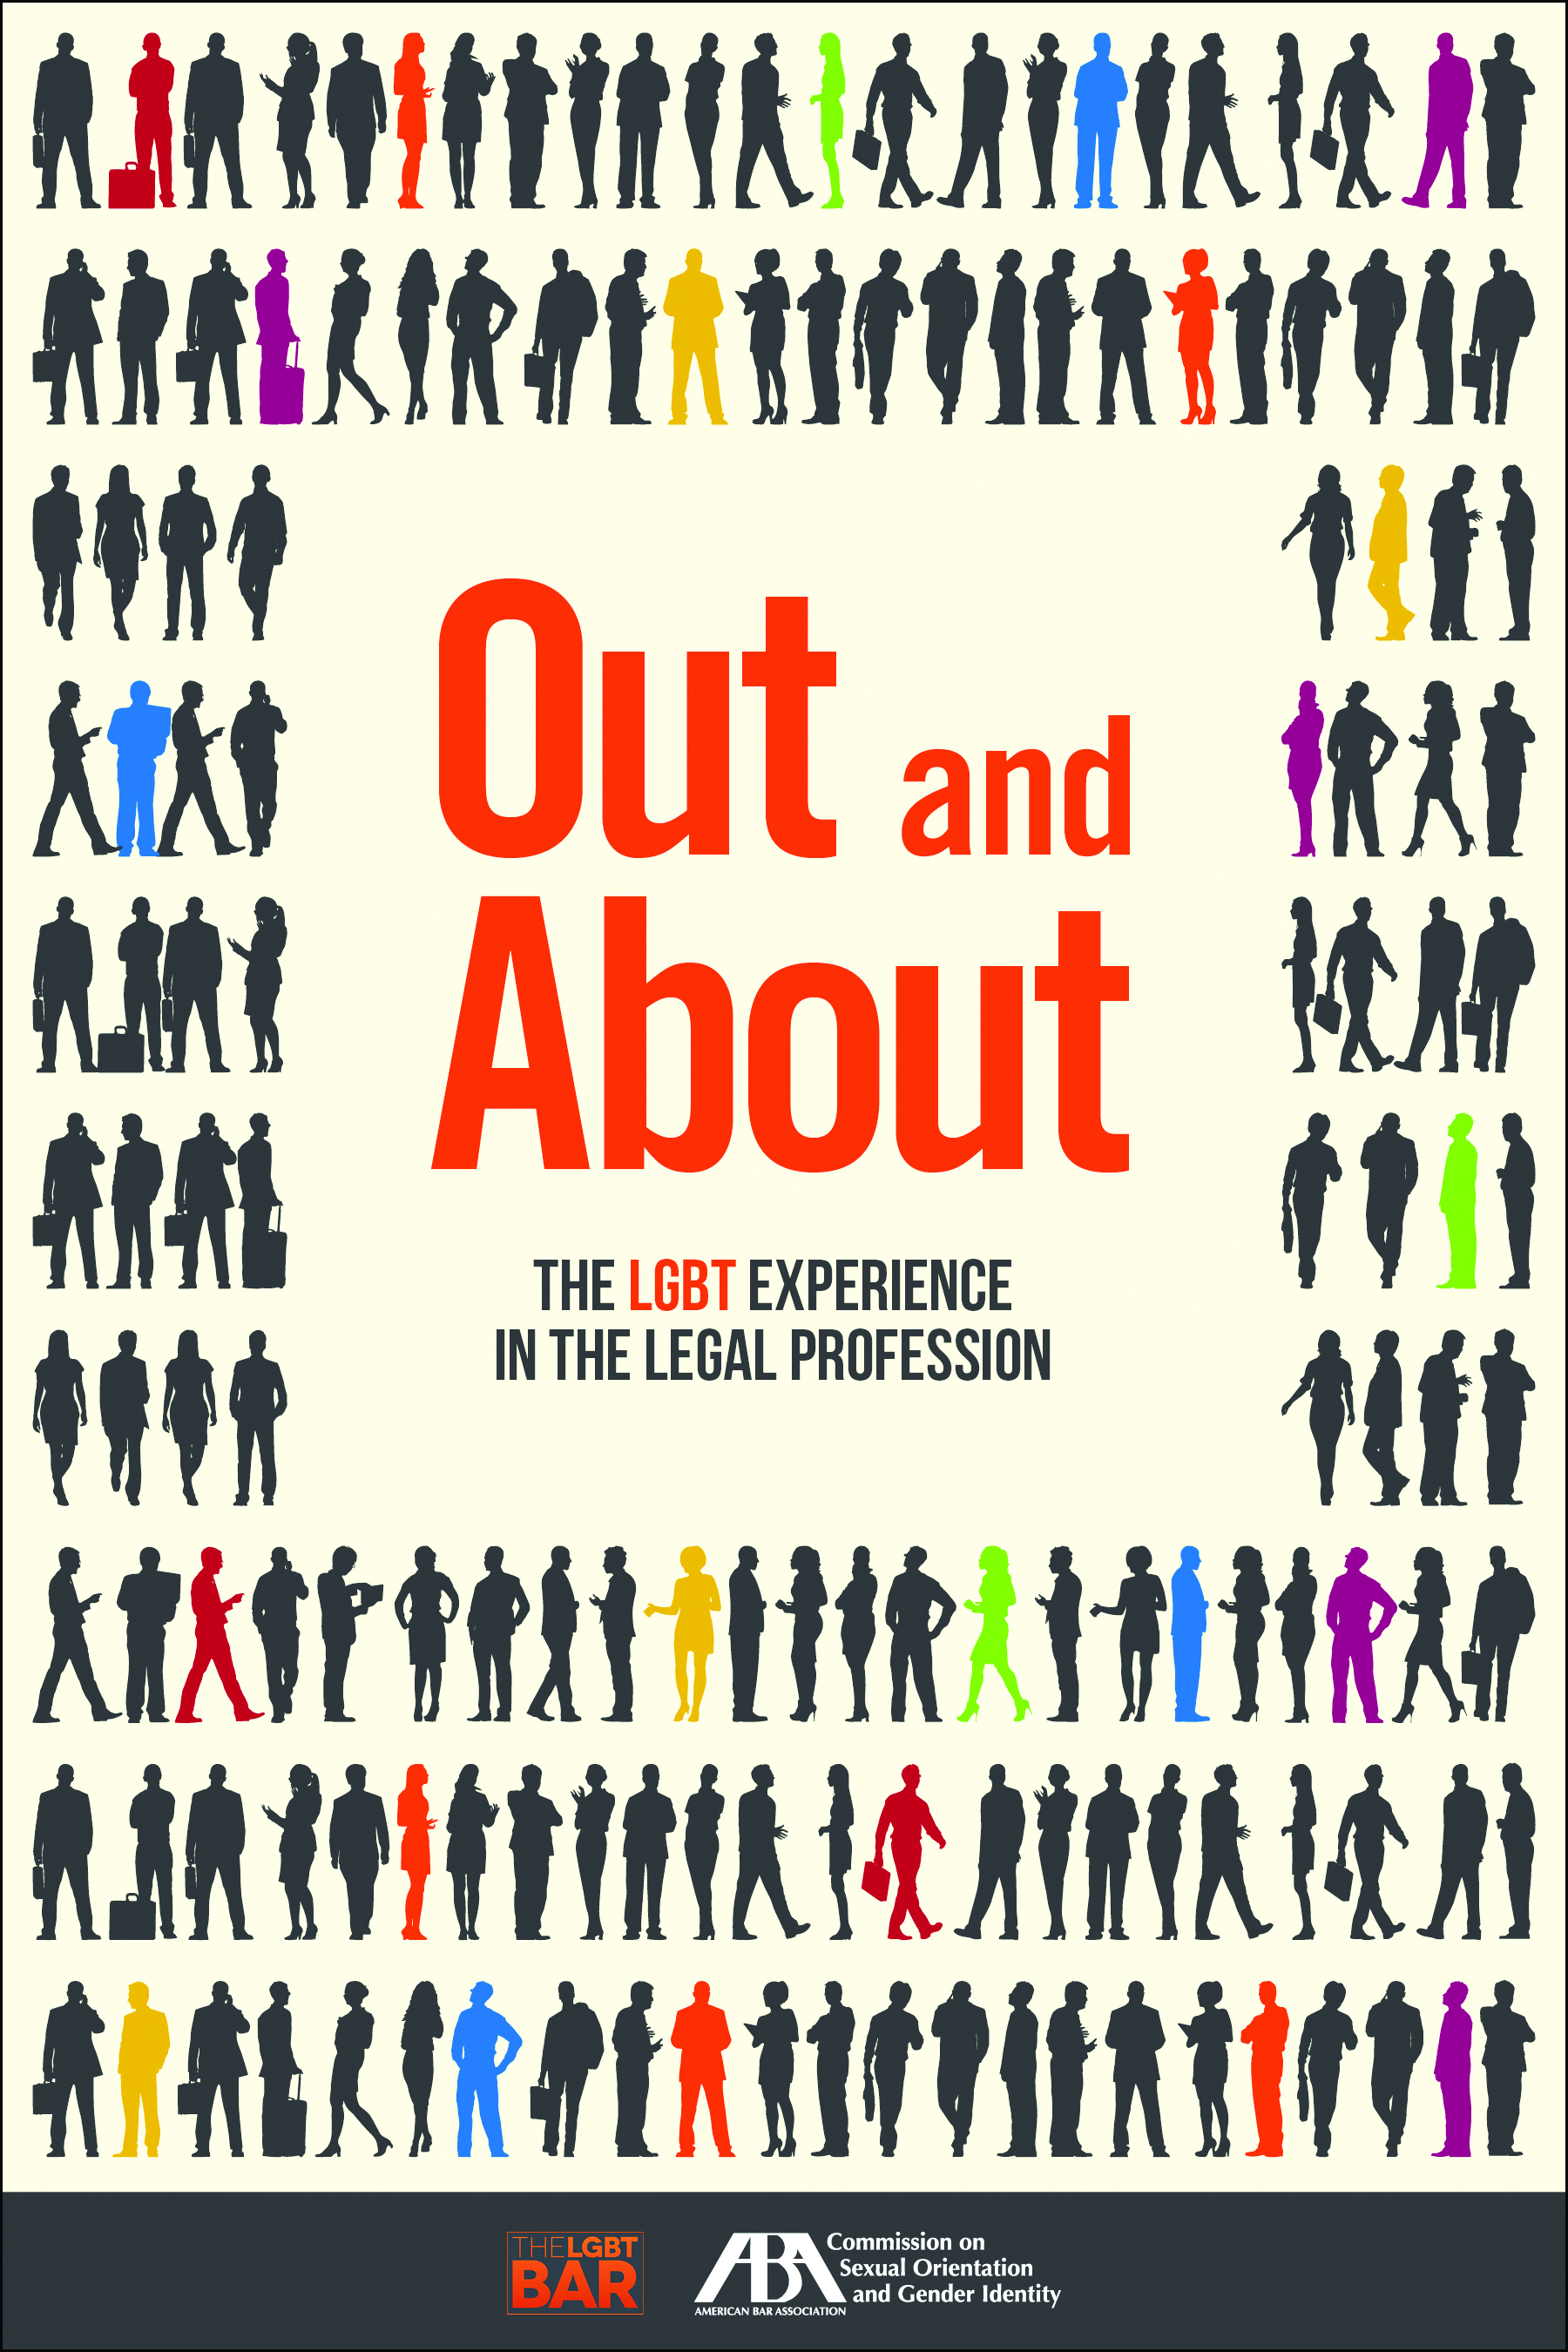 Out and About: The LGBT Experience in the Legal Profession